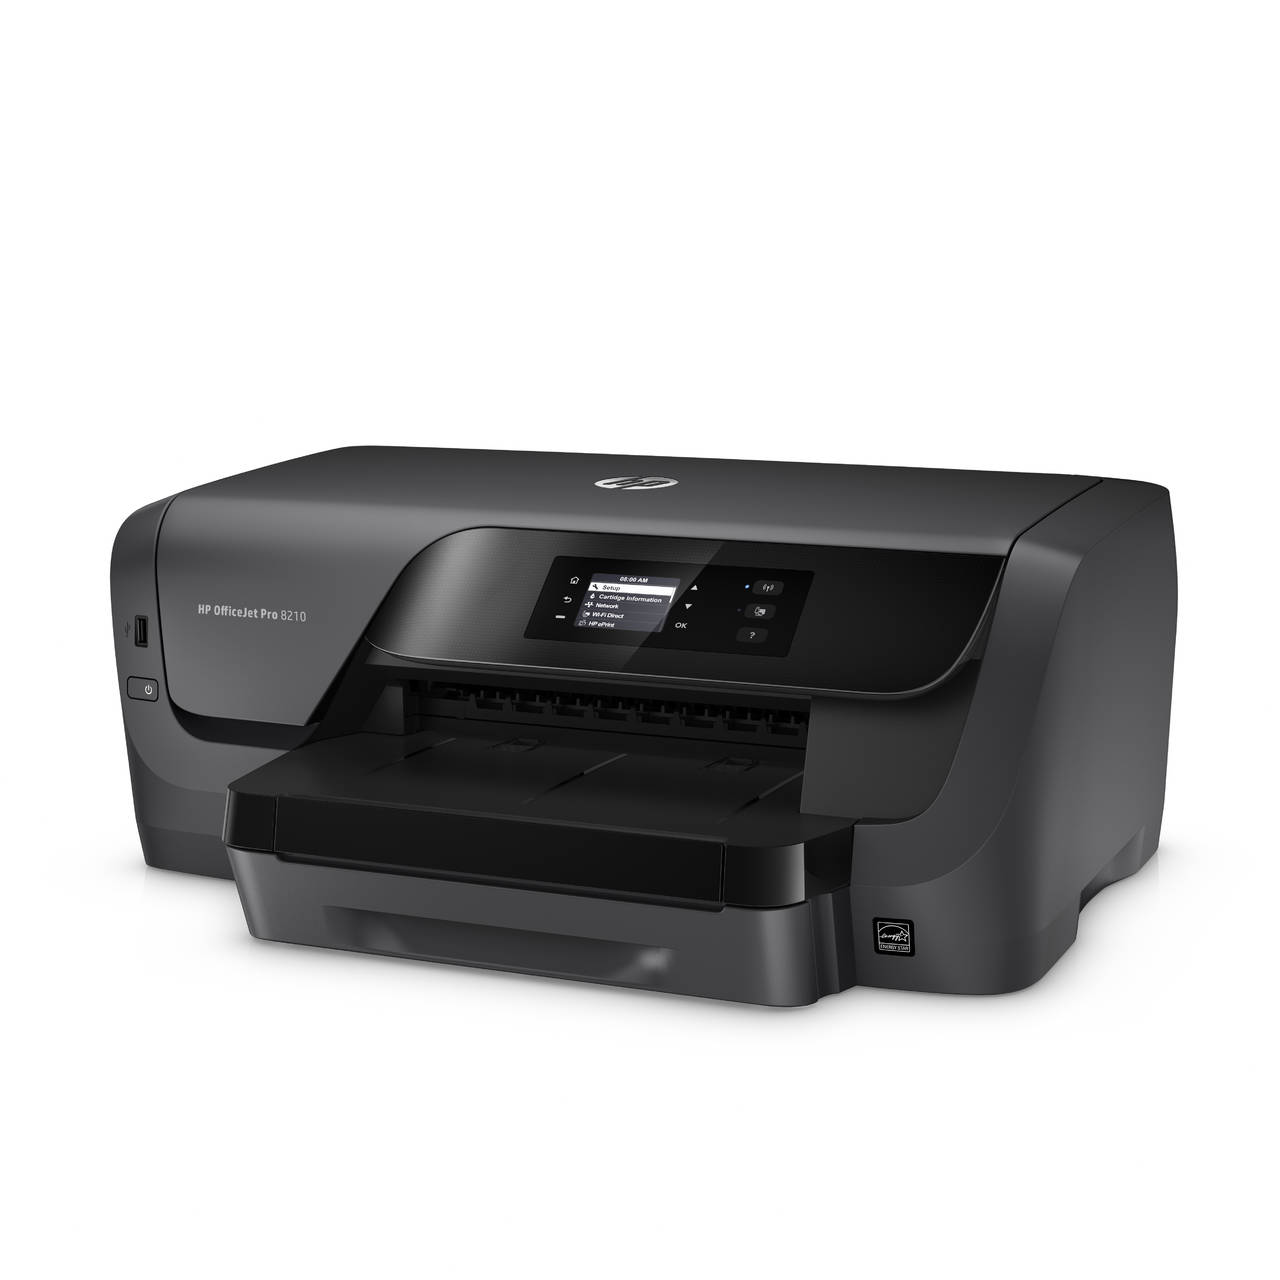 2-HP OfficeJet Pro 8210 Printer